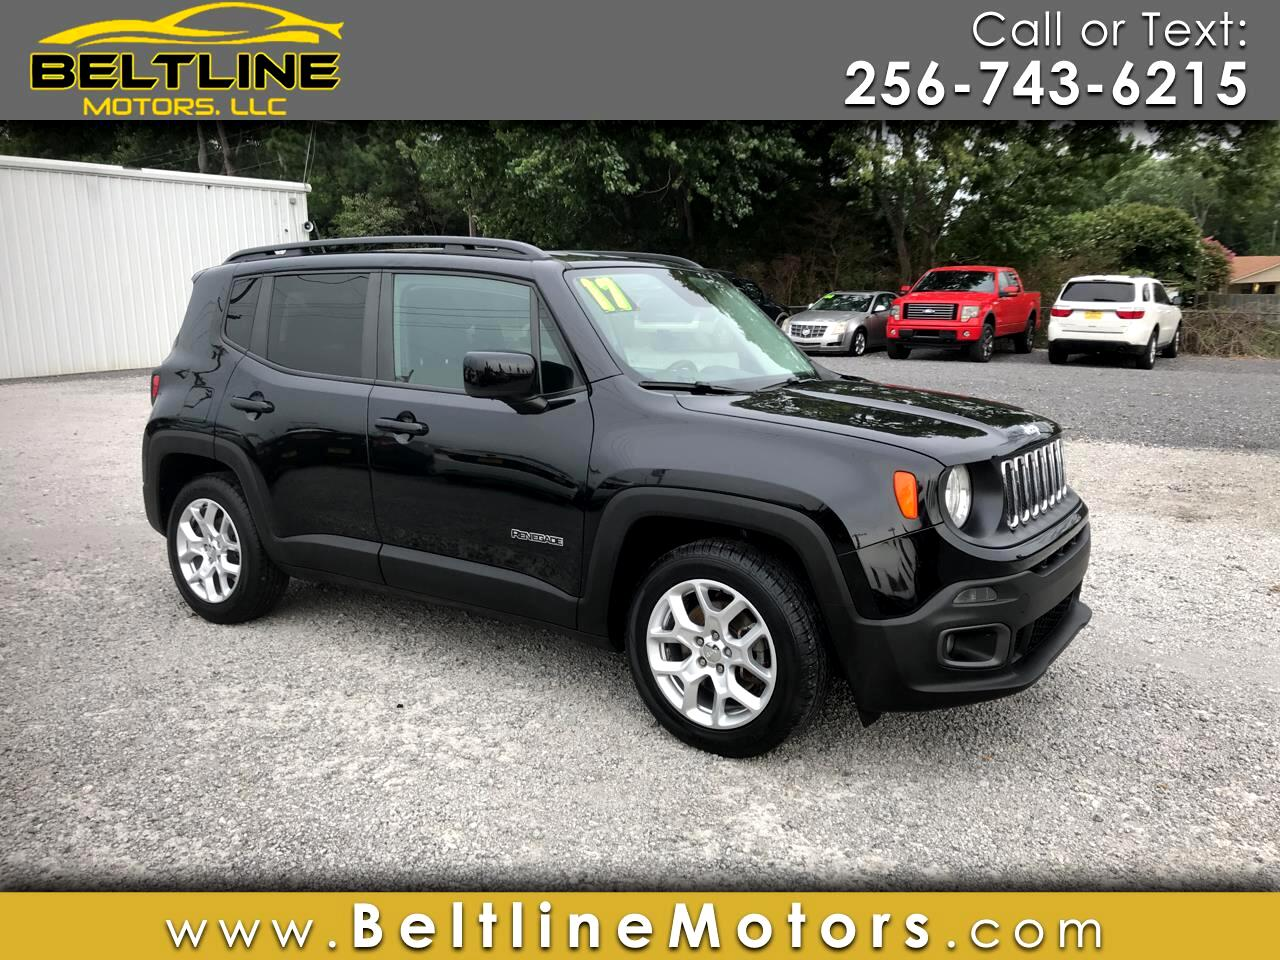 2017 Jeep Renegade FWD 4dr Latitude